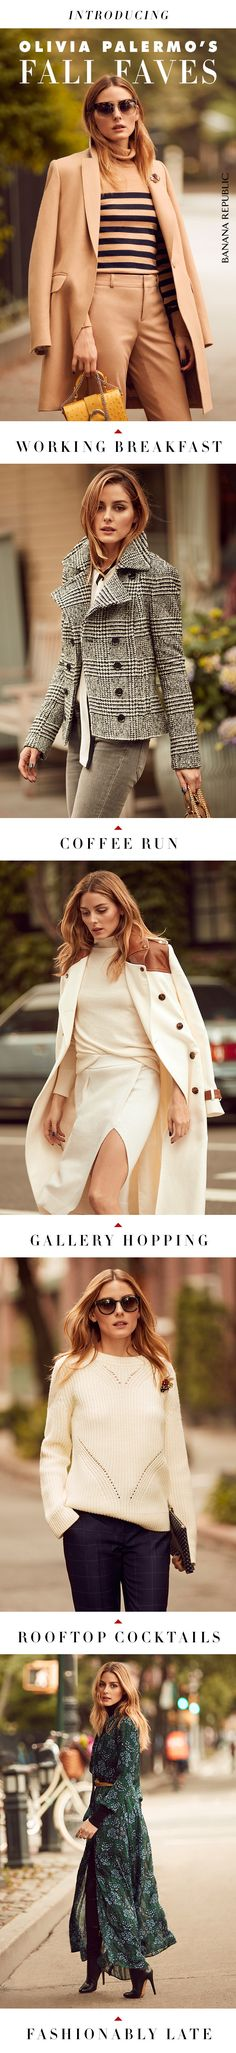 Our style ambassador Olivia Palermo believes in the power of the right fit, the magic of accessories and investing in pieces you'll love forever. Check out Olivia's picks from our new fall collection.